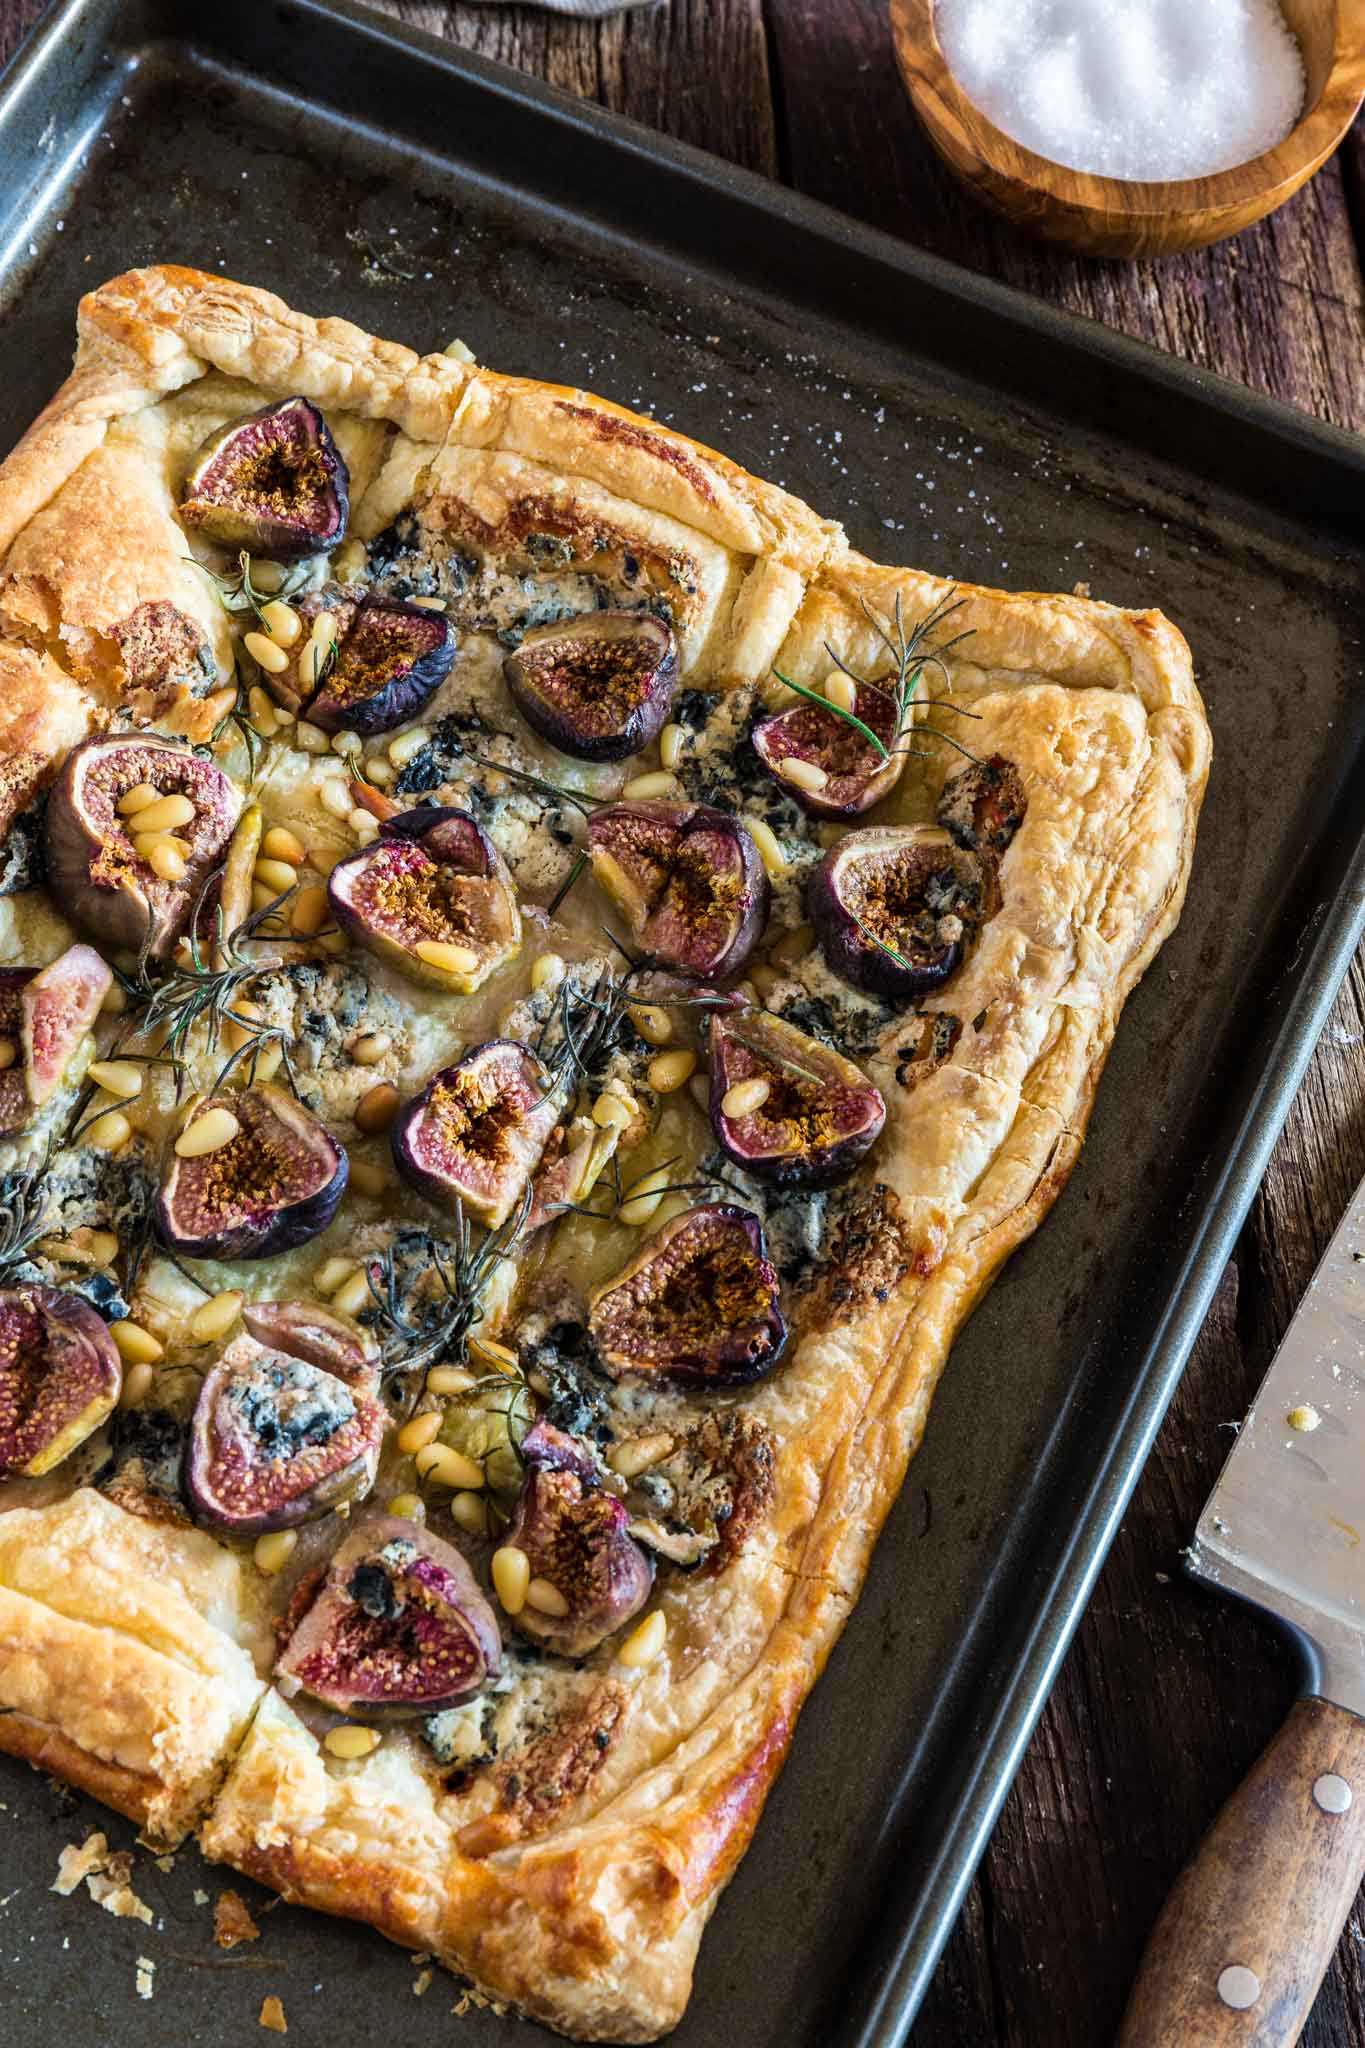 Blue Cheese Fig Tart | www.oliviascuisine.com | A delicious savory and sweet tart, made with blue cheese, fresh figs, rosemary, pine nuts, sea salt and a touch of honey. Serve it for brunch, as an appetizer and/or as a snack and be ready for your tastebuds to start dancing the can-can!